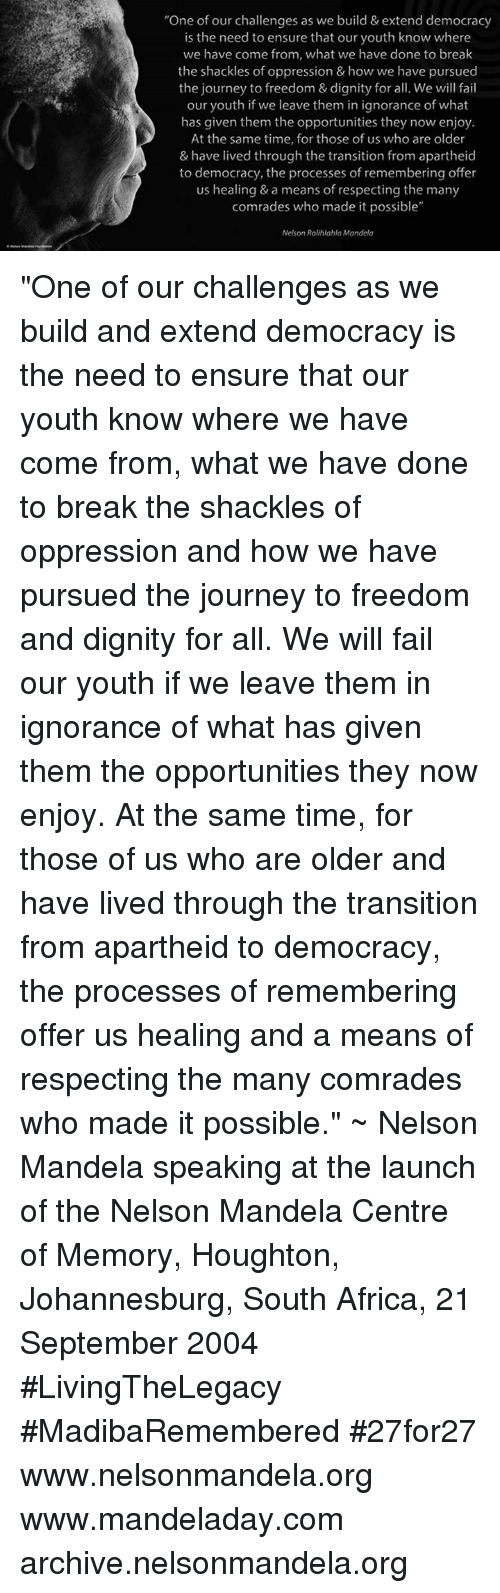 "Memes, Nelson Mandela, and Apartheid: ""One of our challenges as we build & extend democracy  is the need to ensure that our youth know where  we have come from, what we have done to the shackles of oppression & how we have pursued  the journey to freedom & dignity for all. We will fail  our youth if we leave them in ignorance of what  has given them the opportunities they now enjoy  At the same time, for those of us who are older  & have lived through the transition from apartheid  to democracy, the processes of remembering offer  us healing & a means of respecting the many  comrades who made it possible""  Nelson Rolihlahla Mandela ""One of our challenges as we build and extend democracy is the need to ensure that our youth know where we have come from, what we have done to break the shackles of oppression and how we have pursued the journey to freedom and dignity for all. We will fail our youth if we leave them in ignorance of what has given them the opportunities they now enjoy. At the same time, for those of us who are older and have lived through the transition from apartheid to democracy, the processes of remembering offer us healing and a means of respecting the many comrades who made it possible."" ~ Nelson Mandela speaking at the launch of the Nelson Mandela Centre of Memory, Houghton, Johannesburg, South Africa, 21 September 2004 #LivingTheLegacy #MadibaRemembered #27for27   www.nelsonmandela.org www.mandeladay.com archive.nelsonmandela.org"